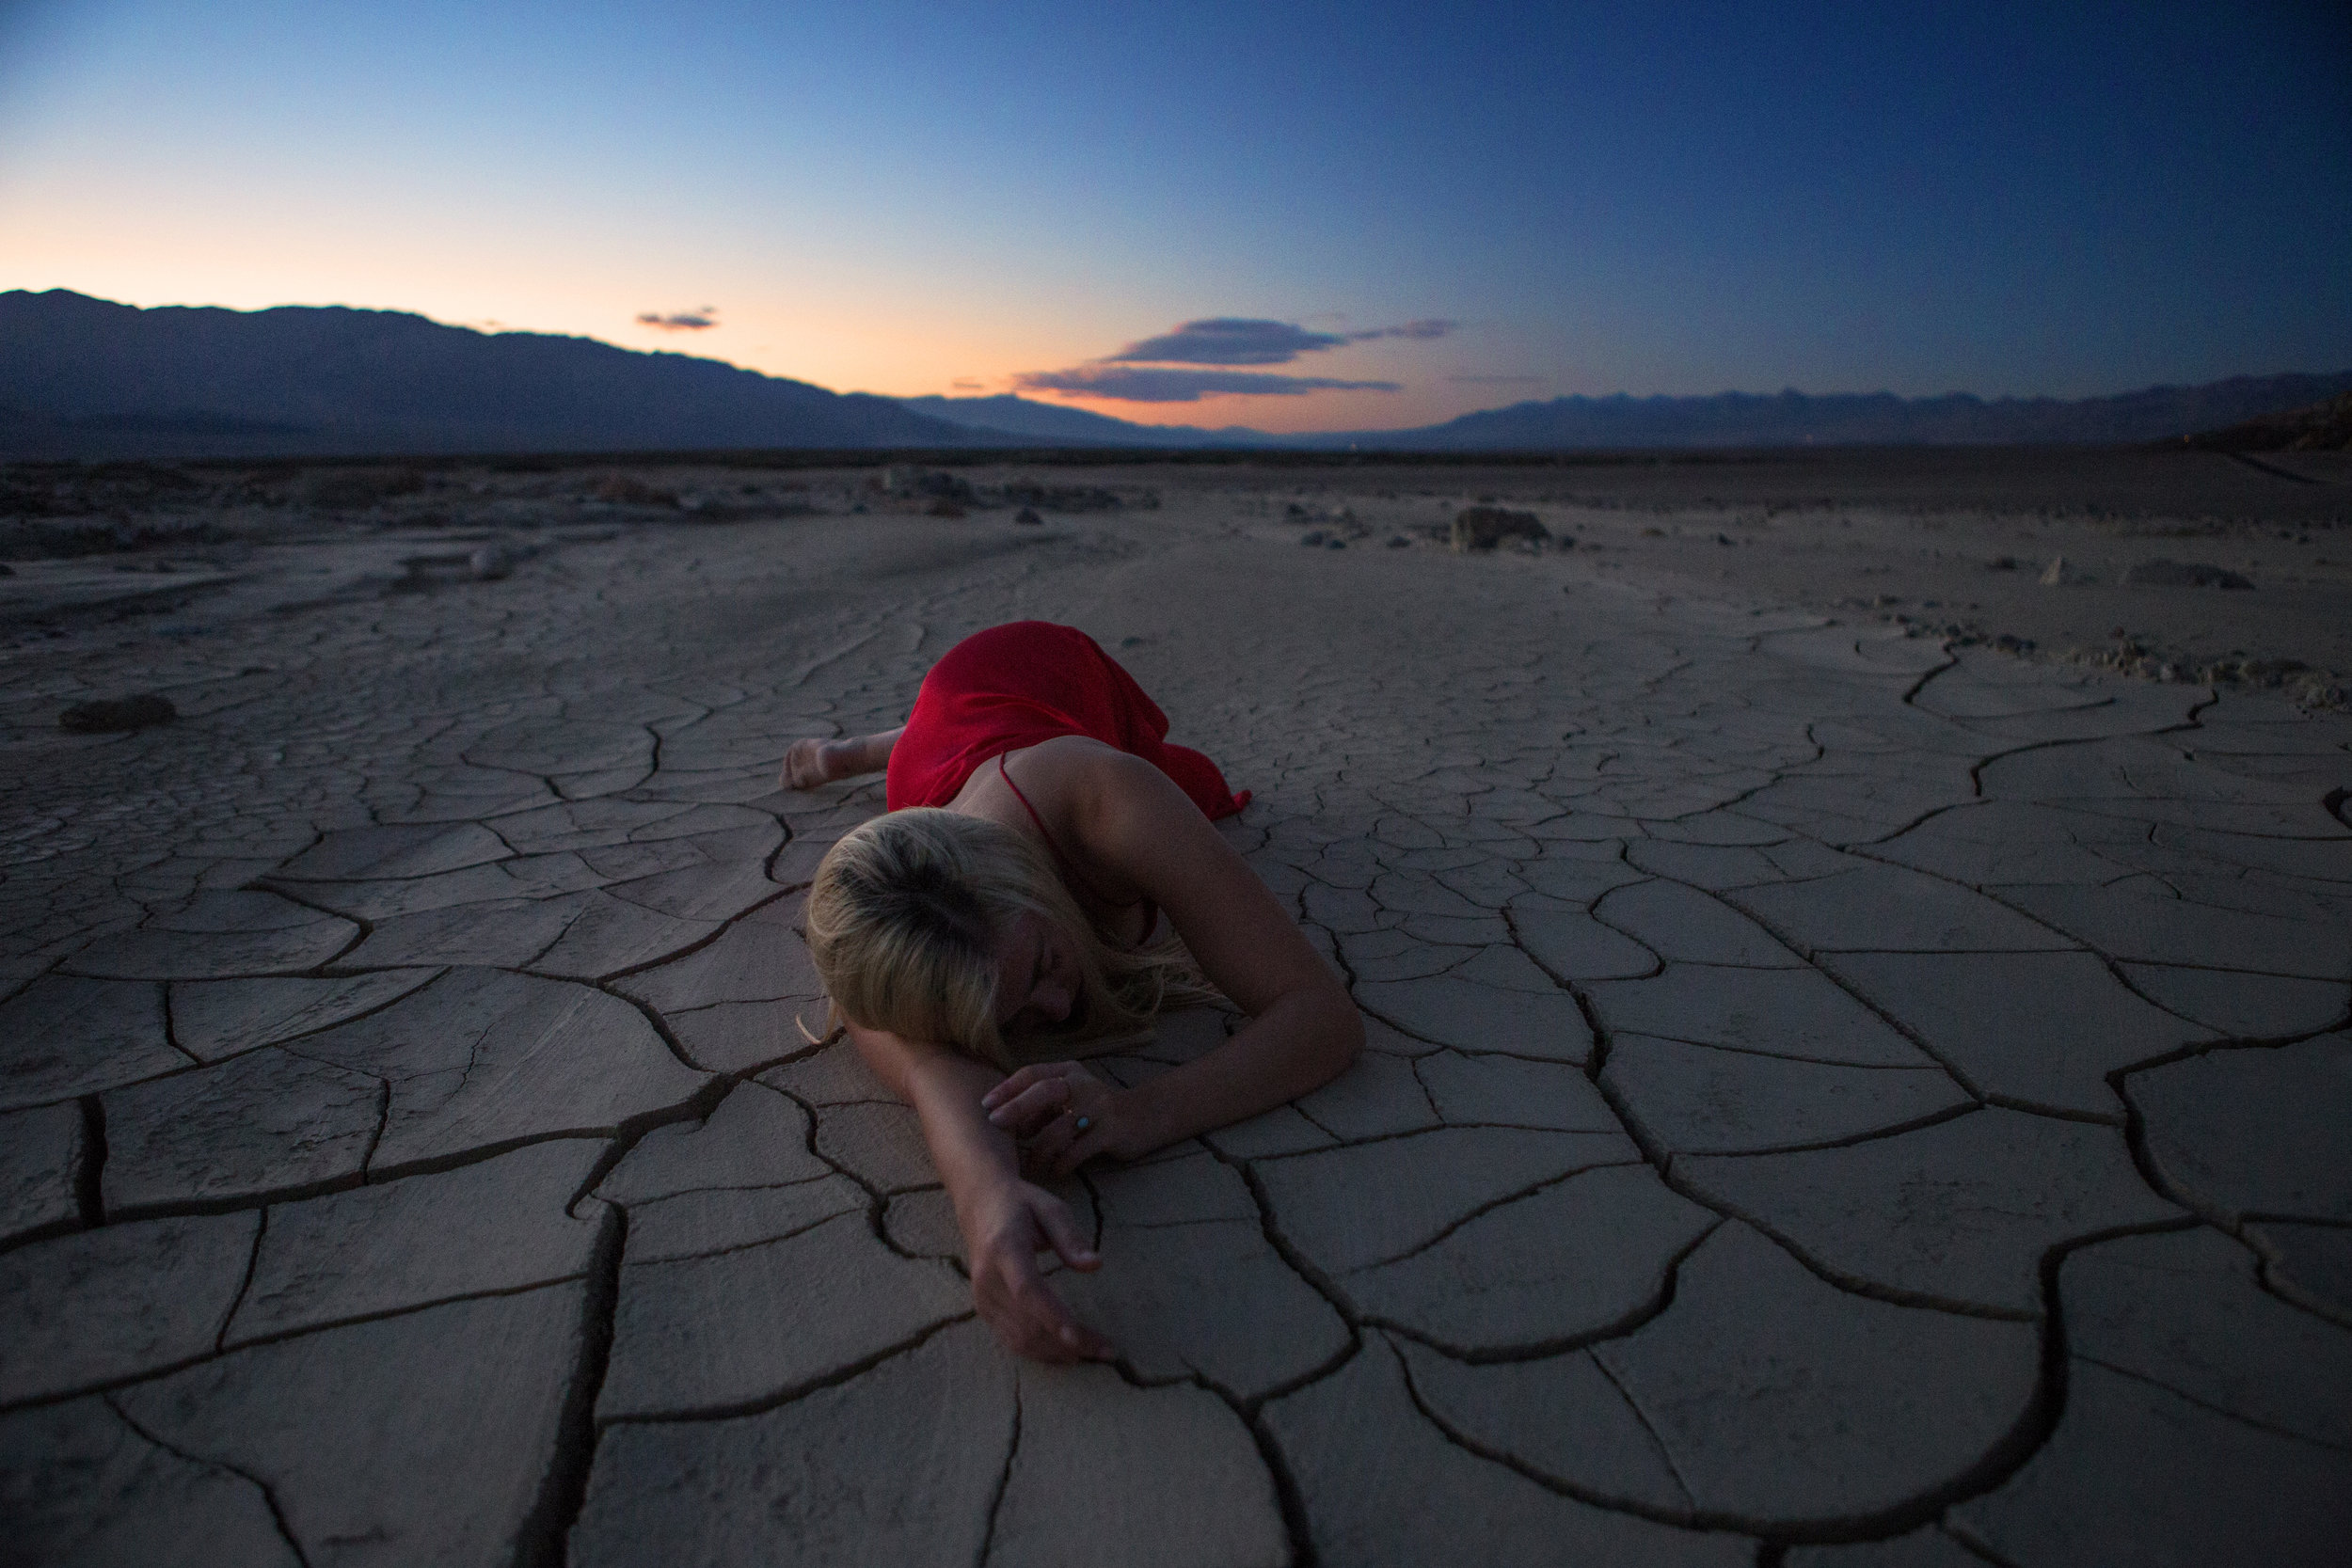 AstroBandit_JordanRose_DeathValley_MudCracks__RedSilk_Sunset_Dancing_5.jpg